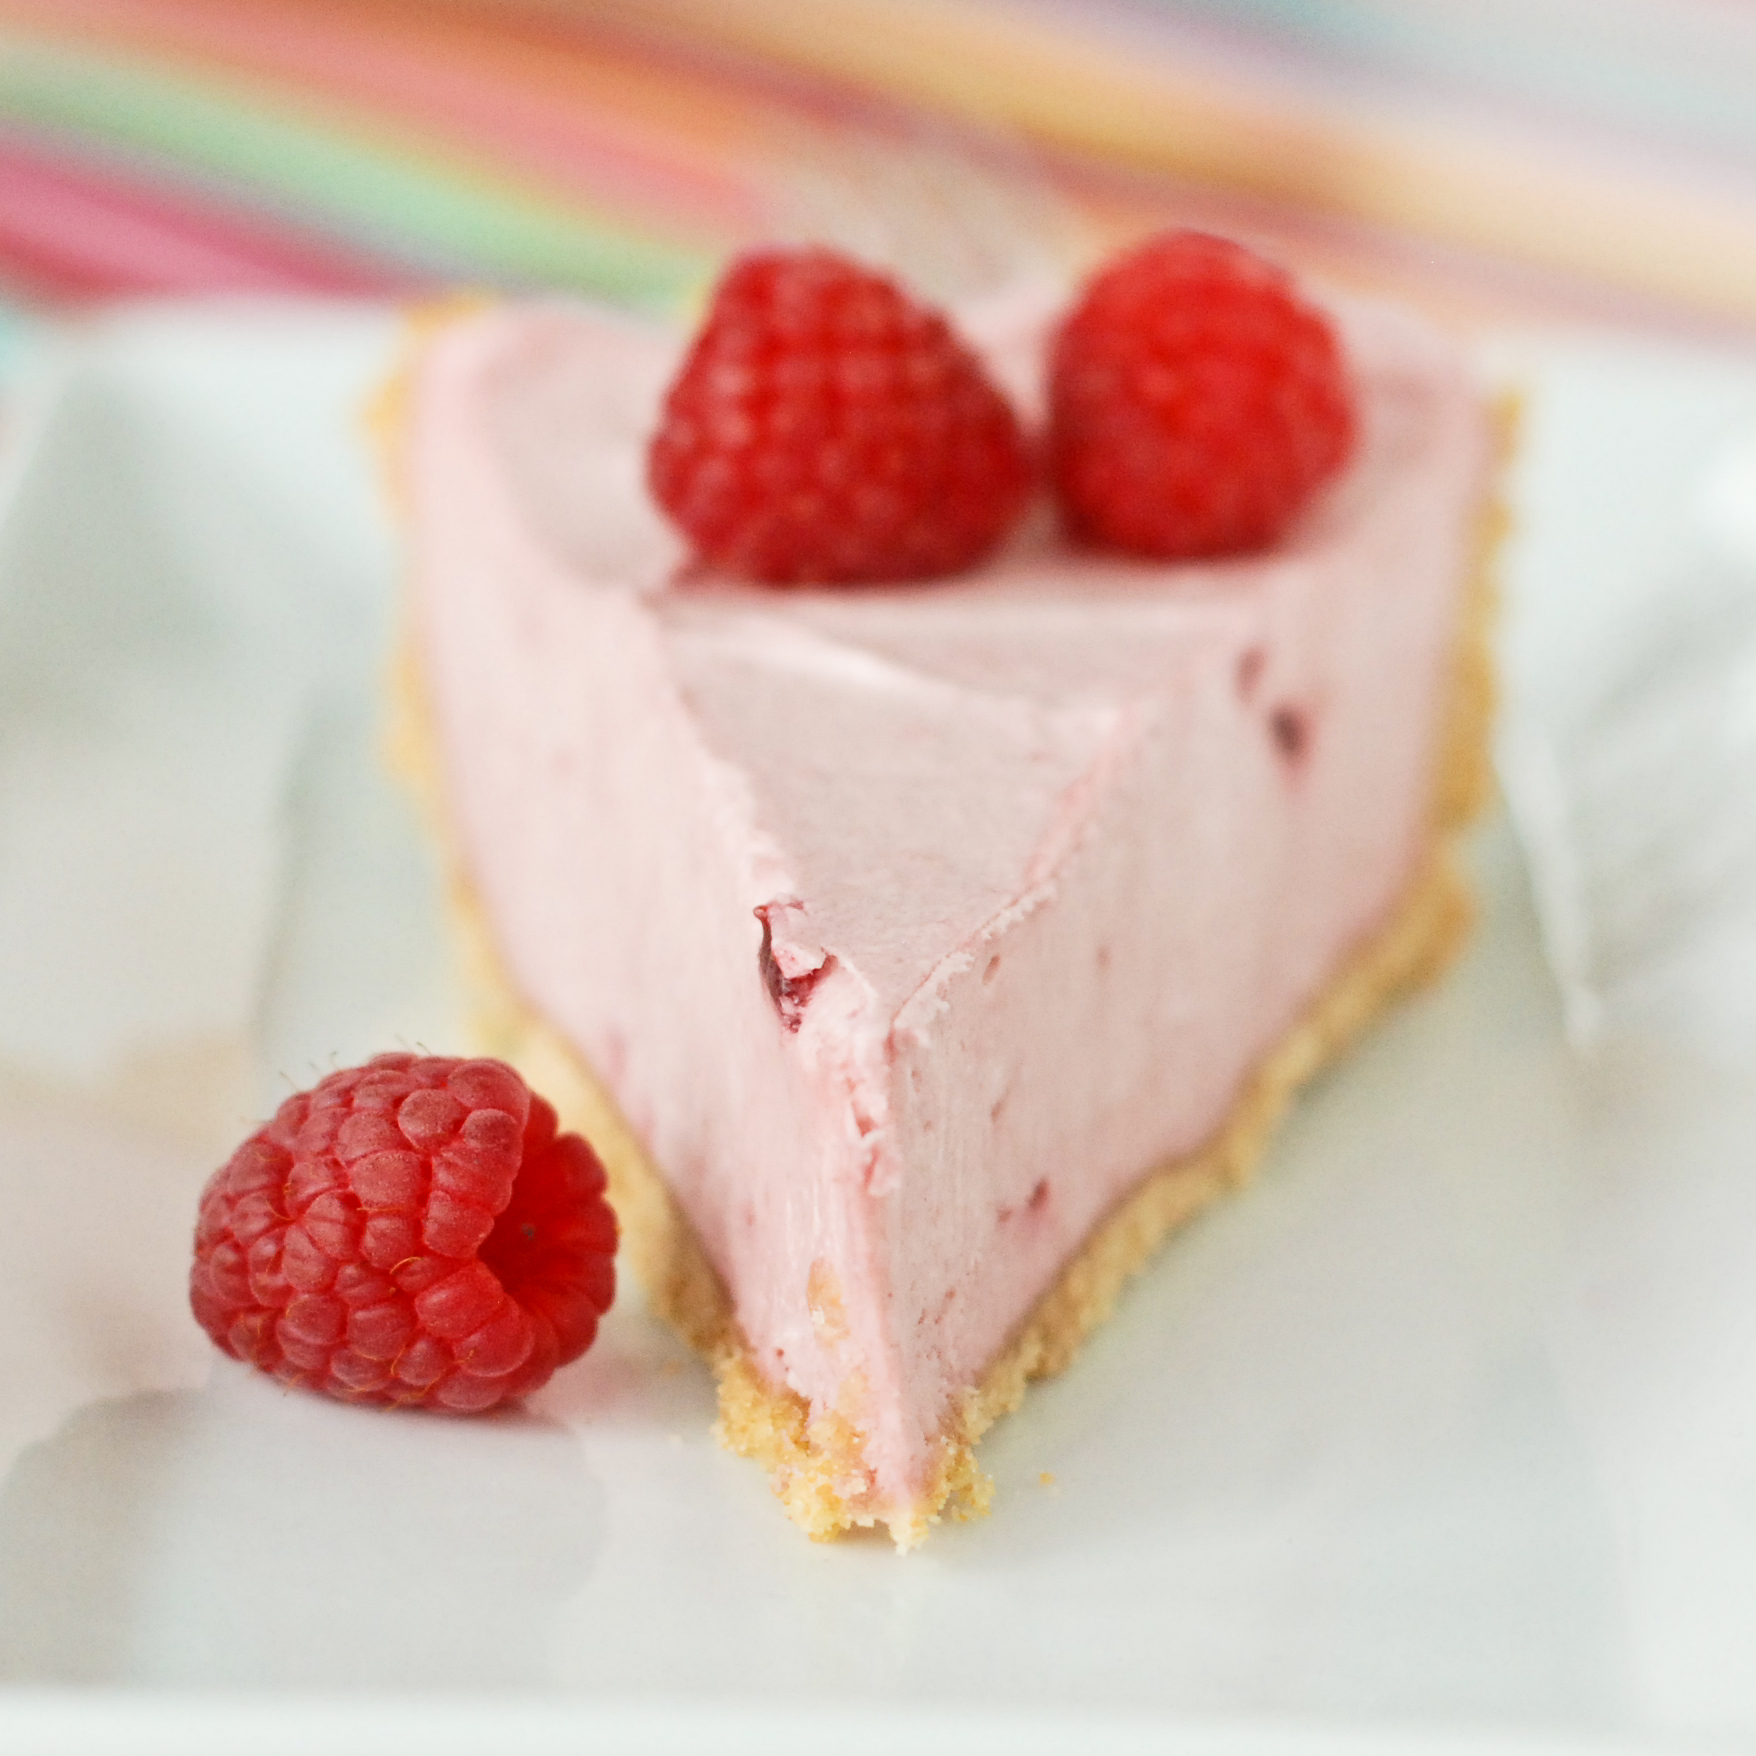 raspberry cream pie day five food finds about raspberries raspberries ...